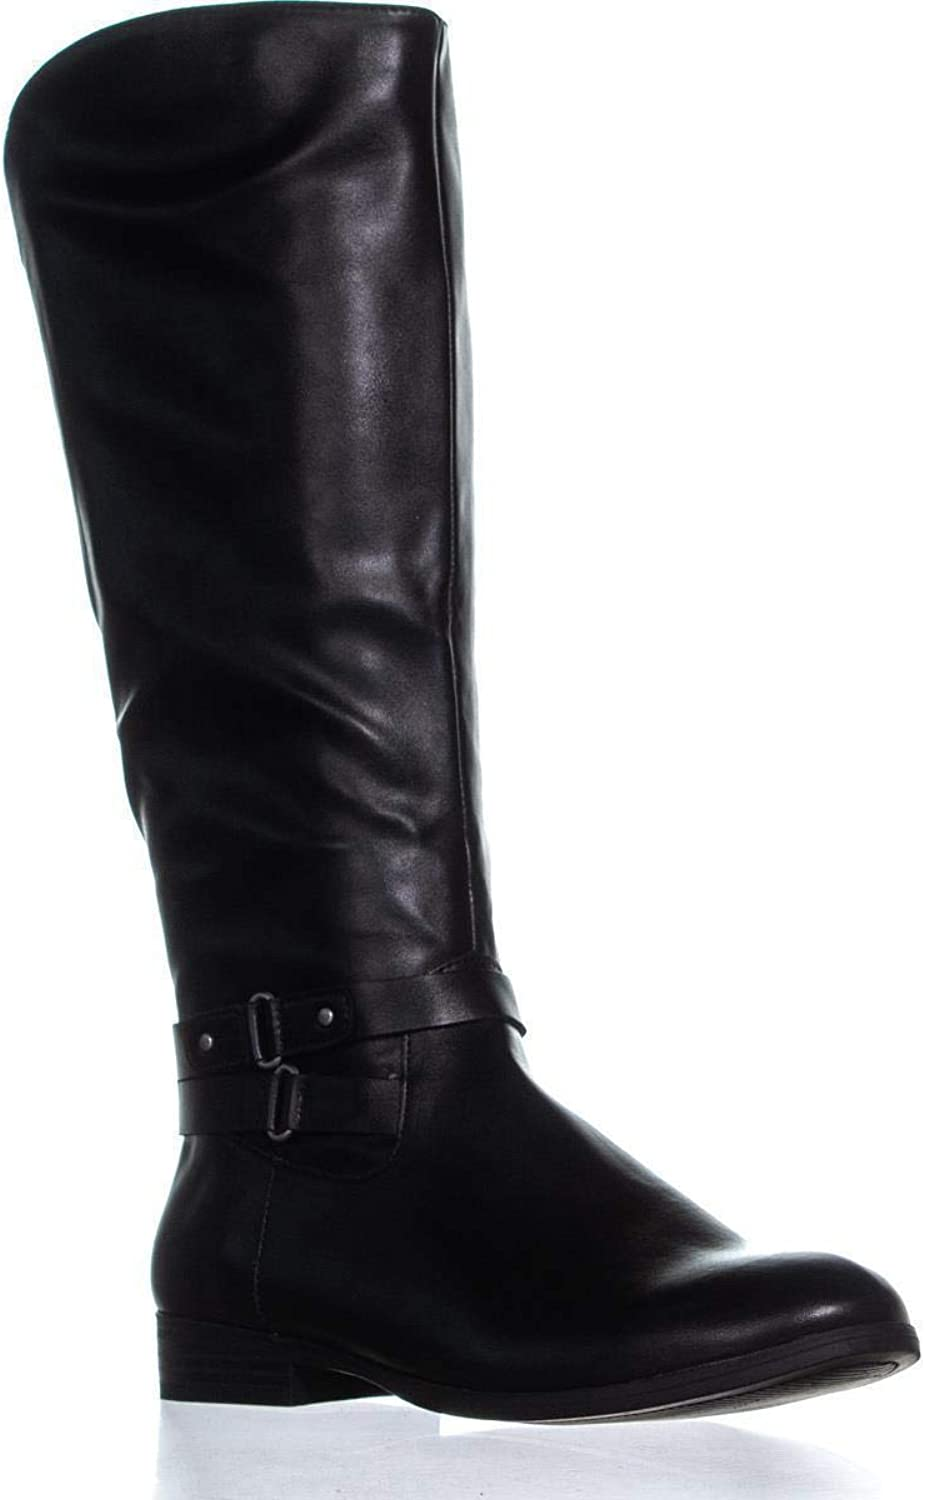 Style & Co. SC35 Kindell Knee High Boots, Black